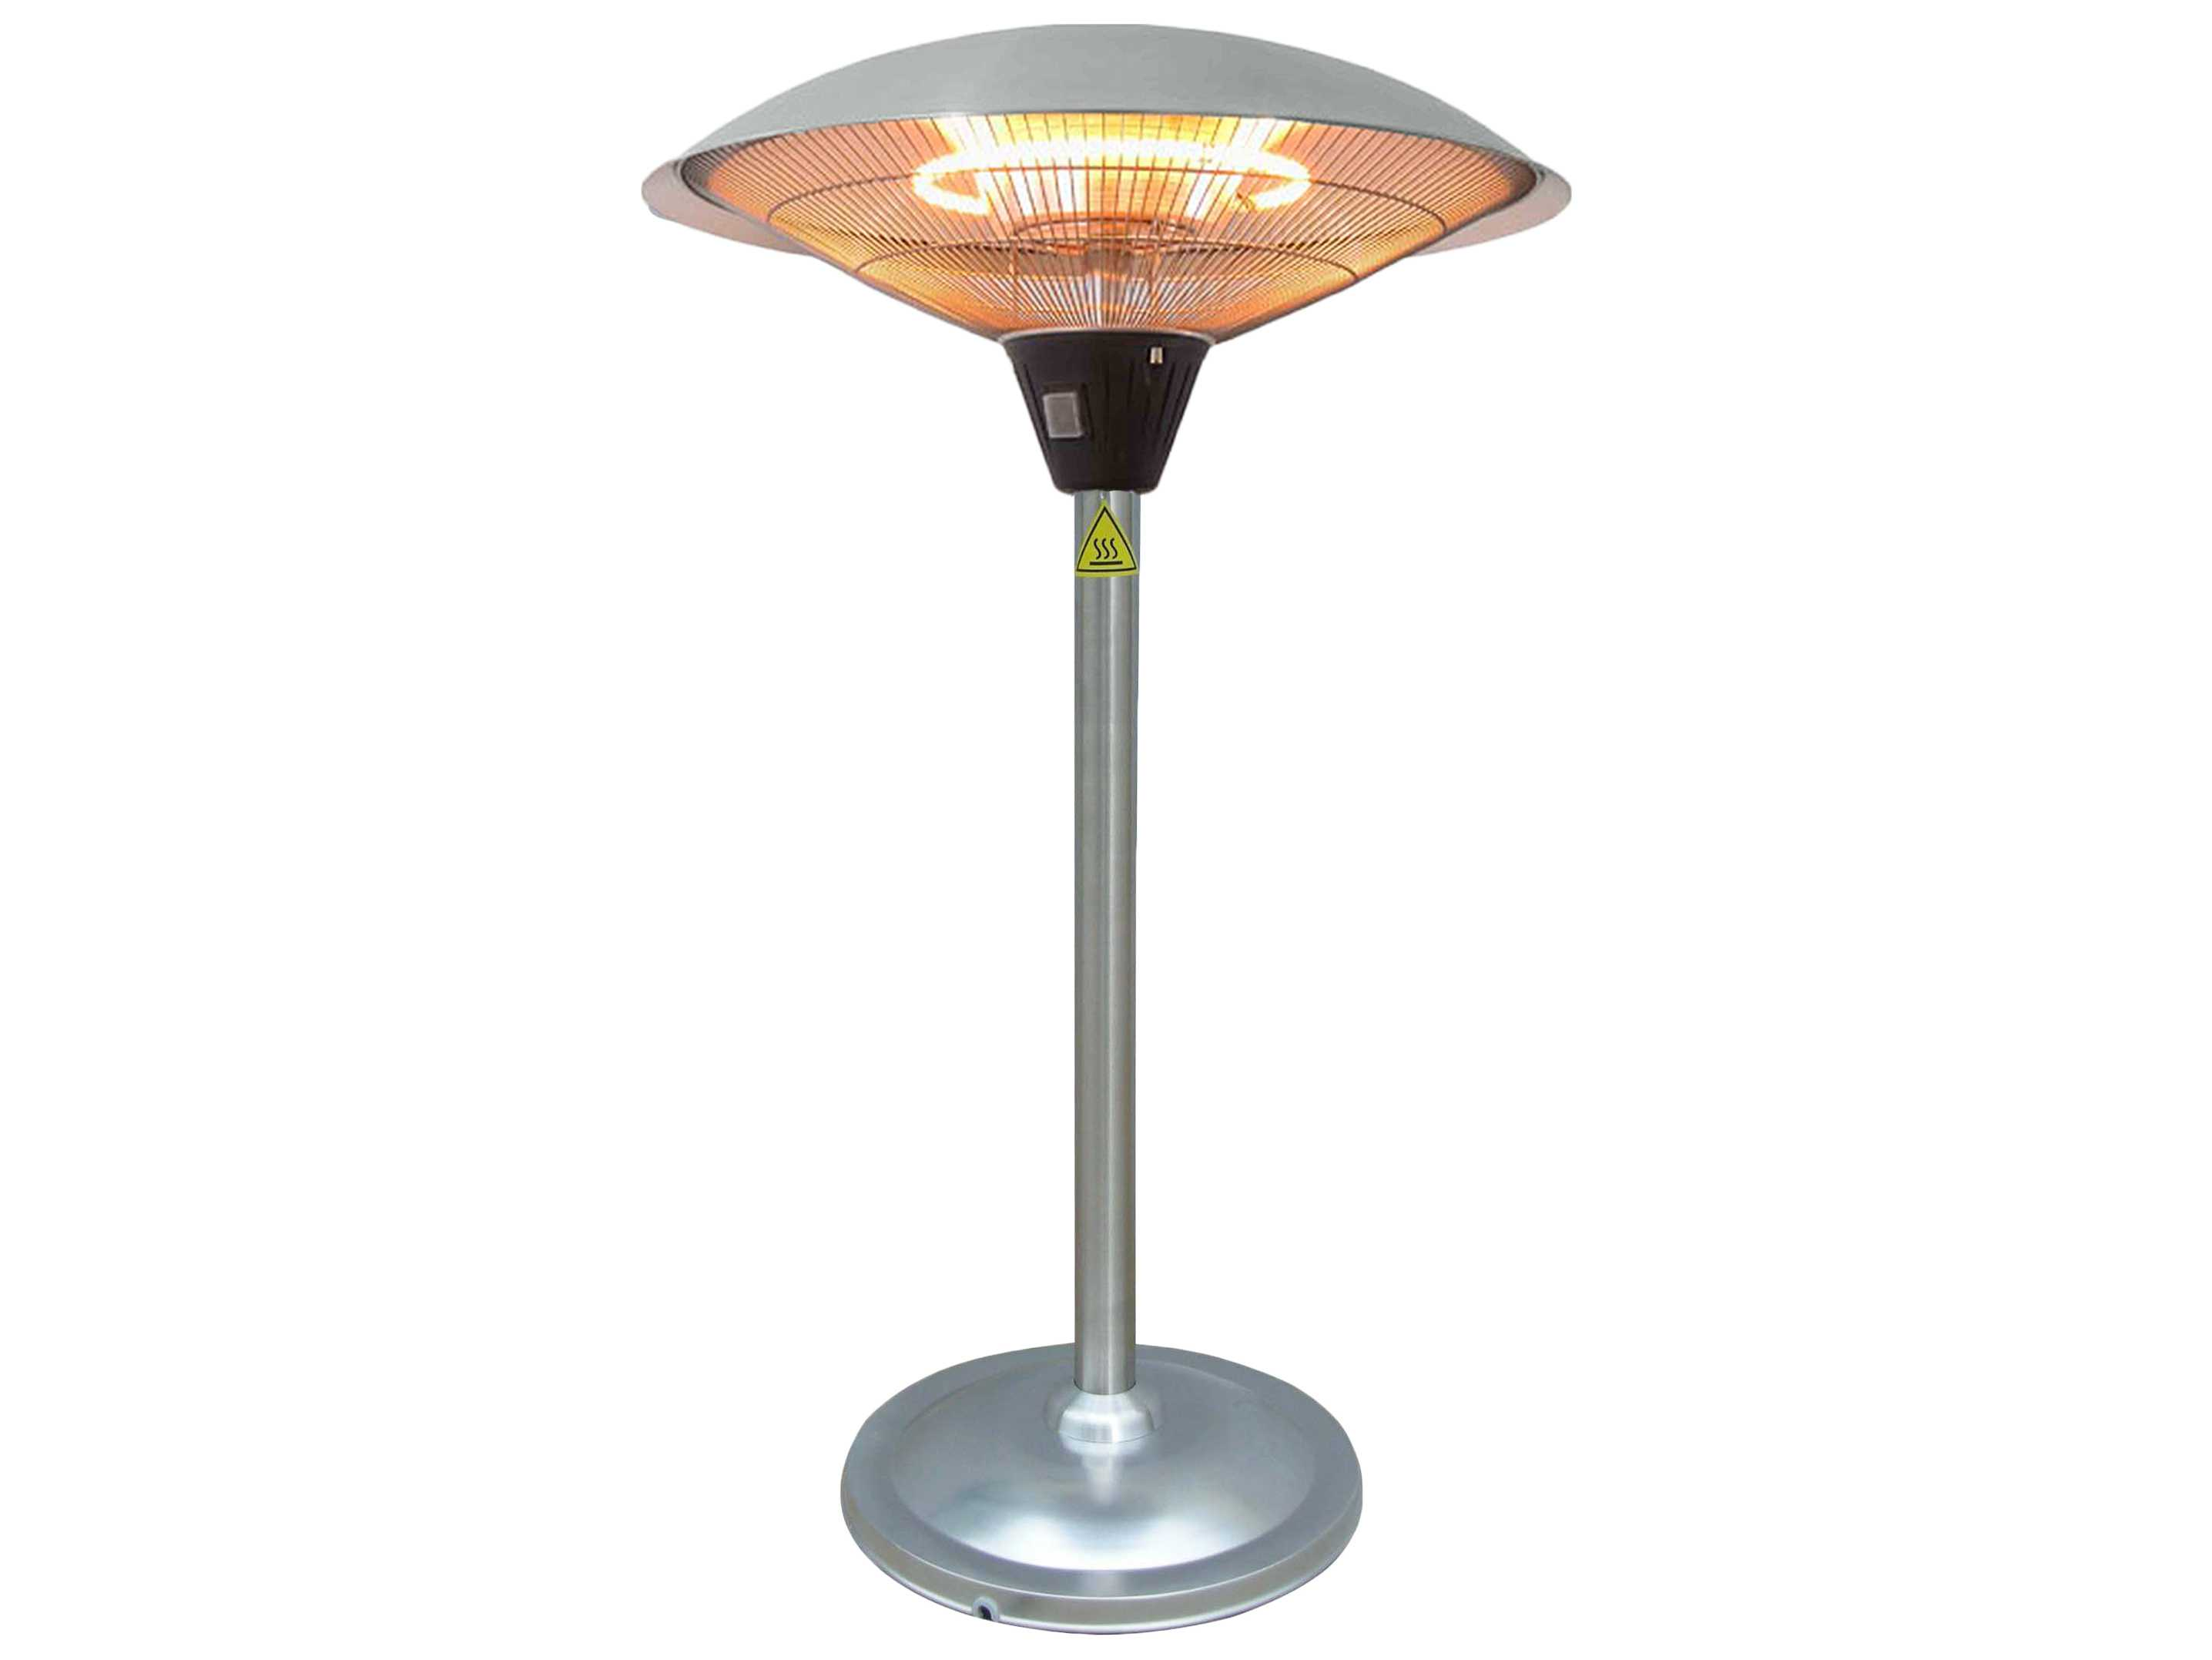 AZ Patio Heaters Tabletop Electric Patio Heater